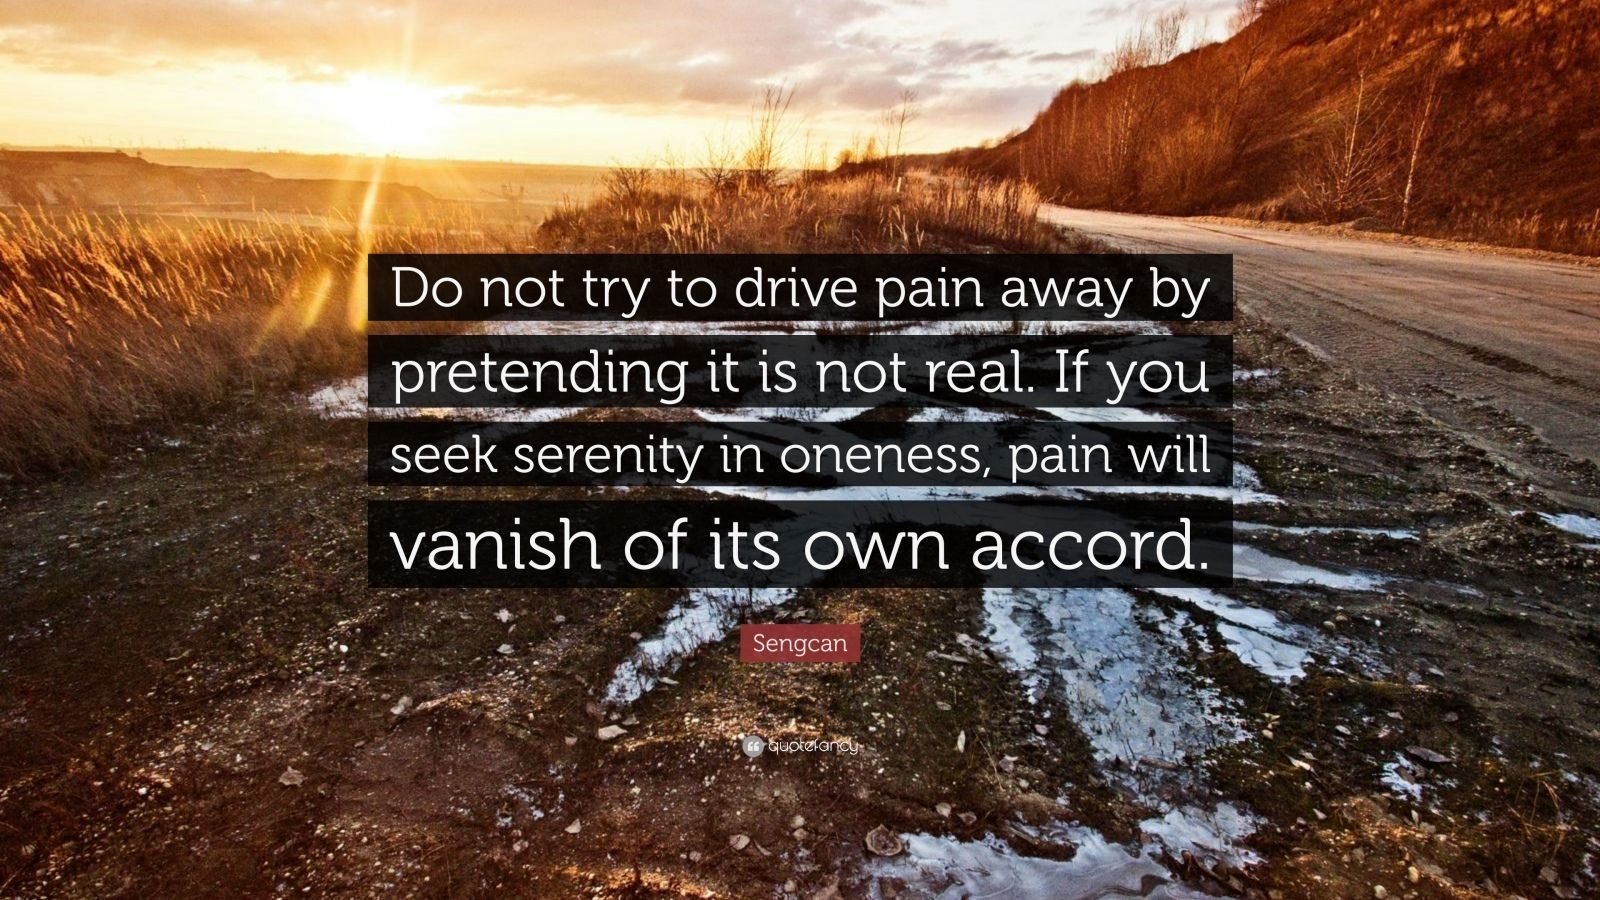 """Sengcan Quote: """"Do not try to drive pain away by pretending it is not real. If you seek serenity in oneness, pain will vanish of its own accord."""""""